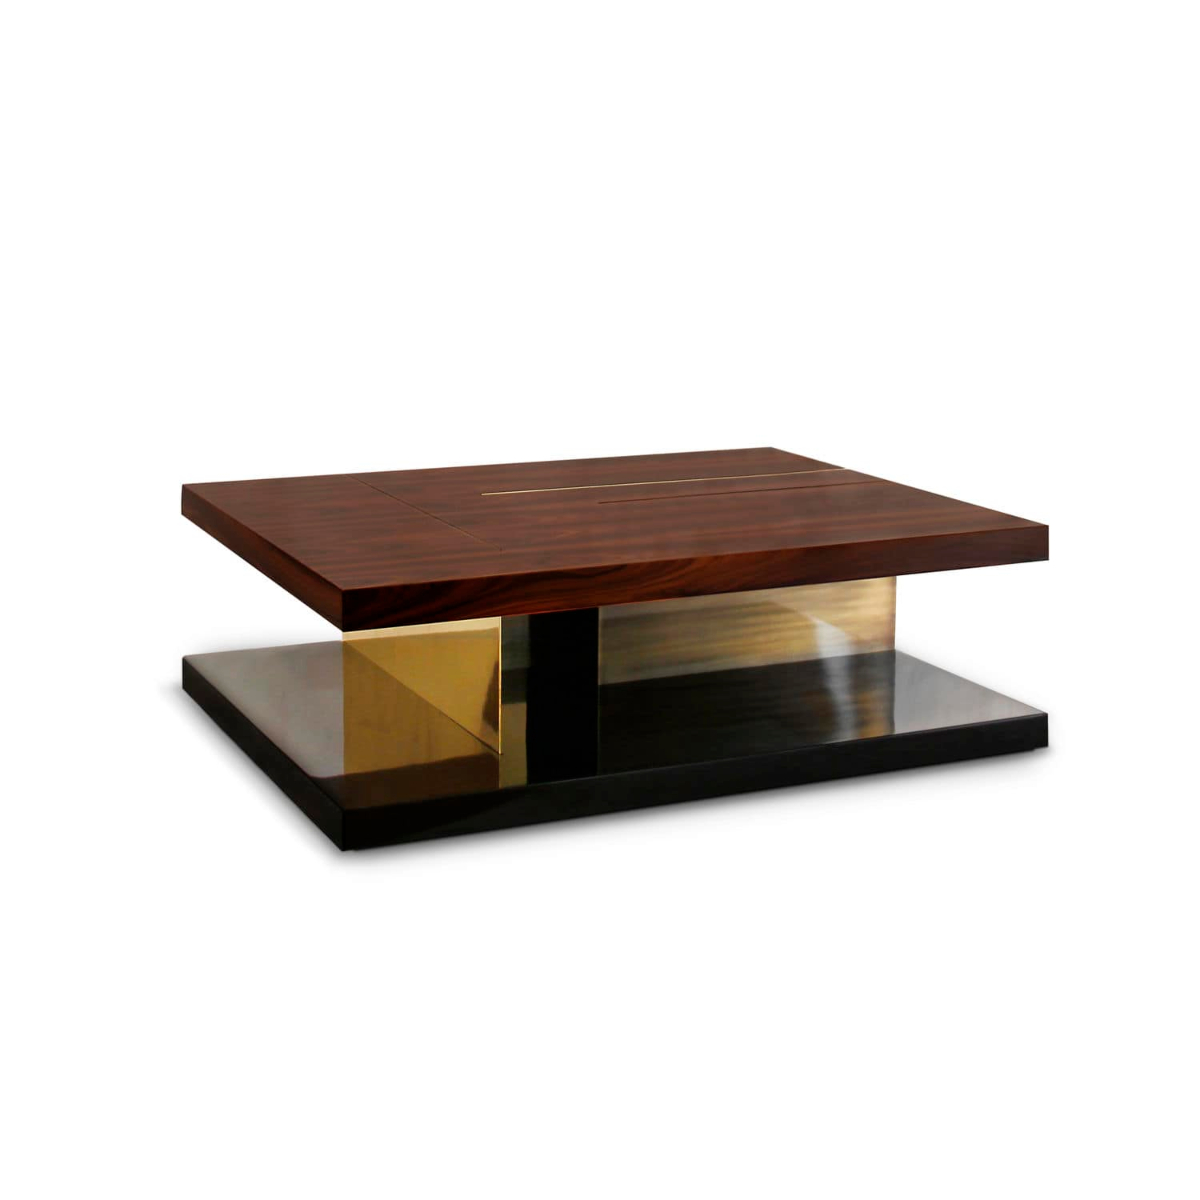 wooden center tables The Best Wooden Center Tables You Can Find 89296 11681618